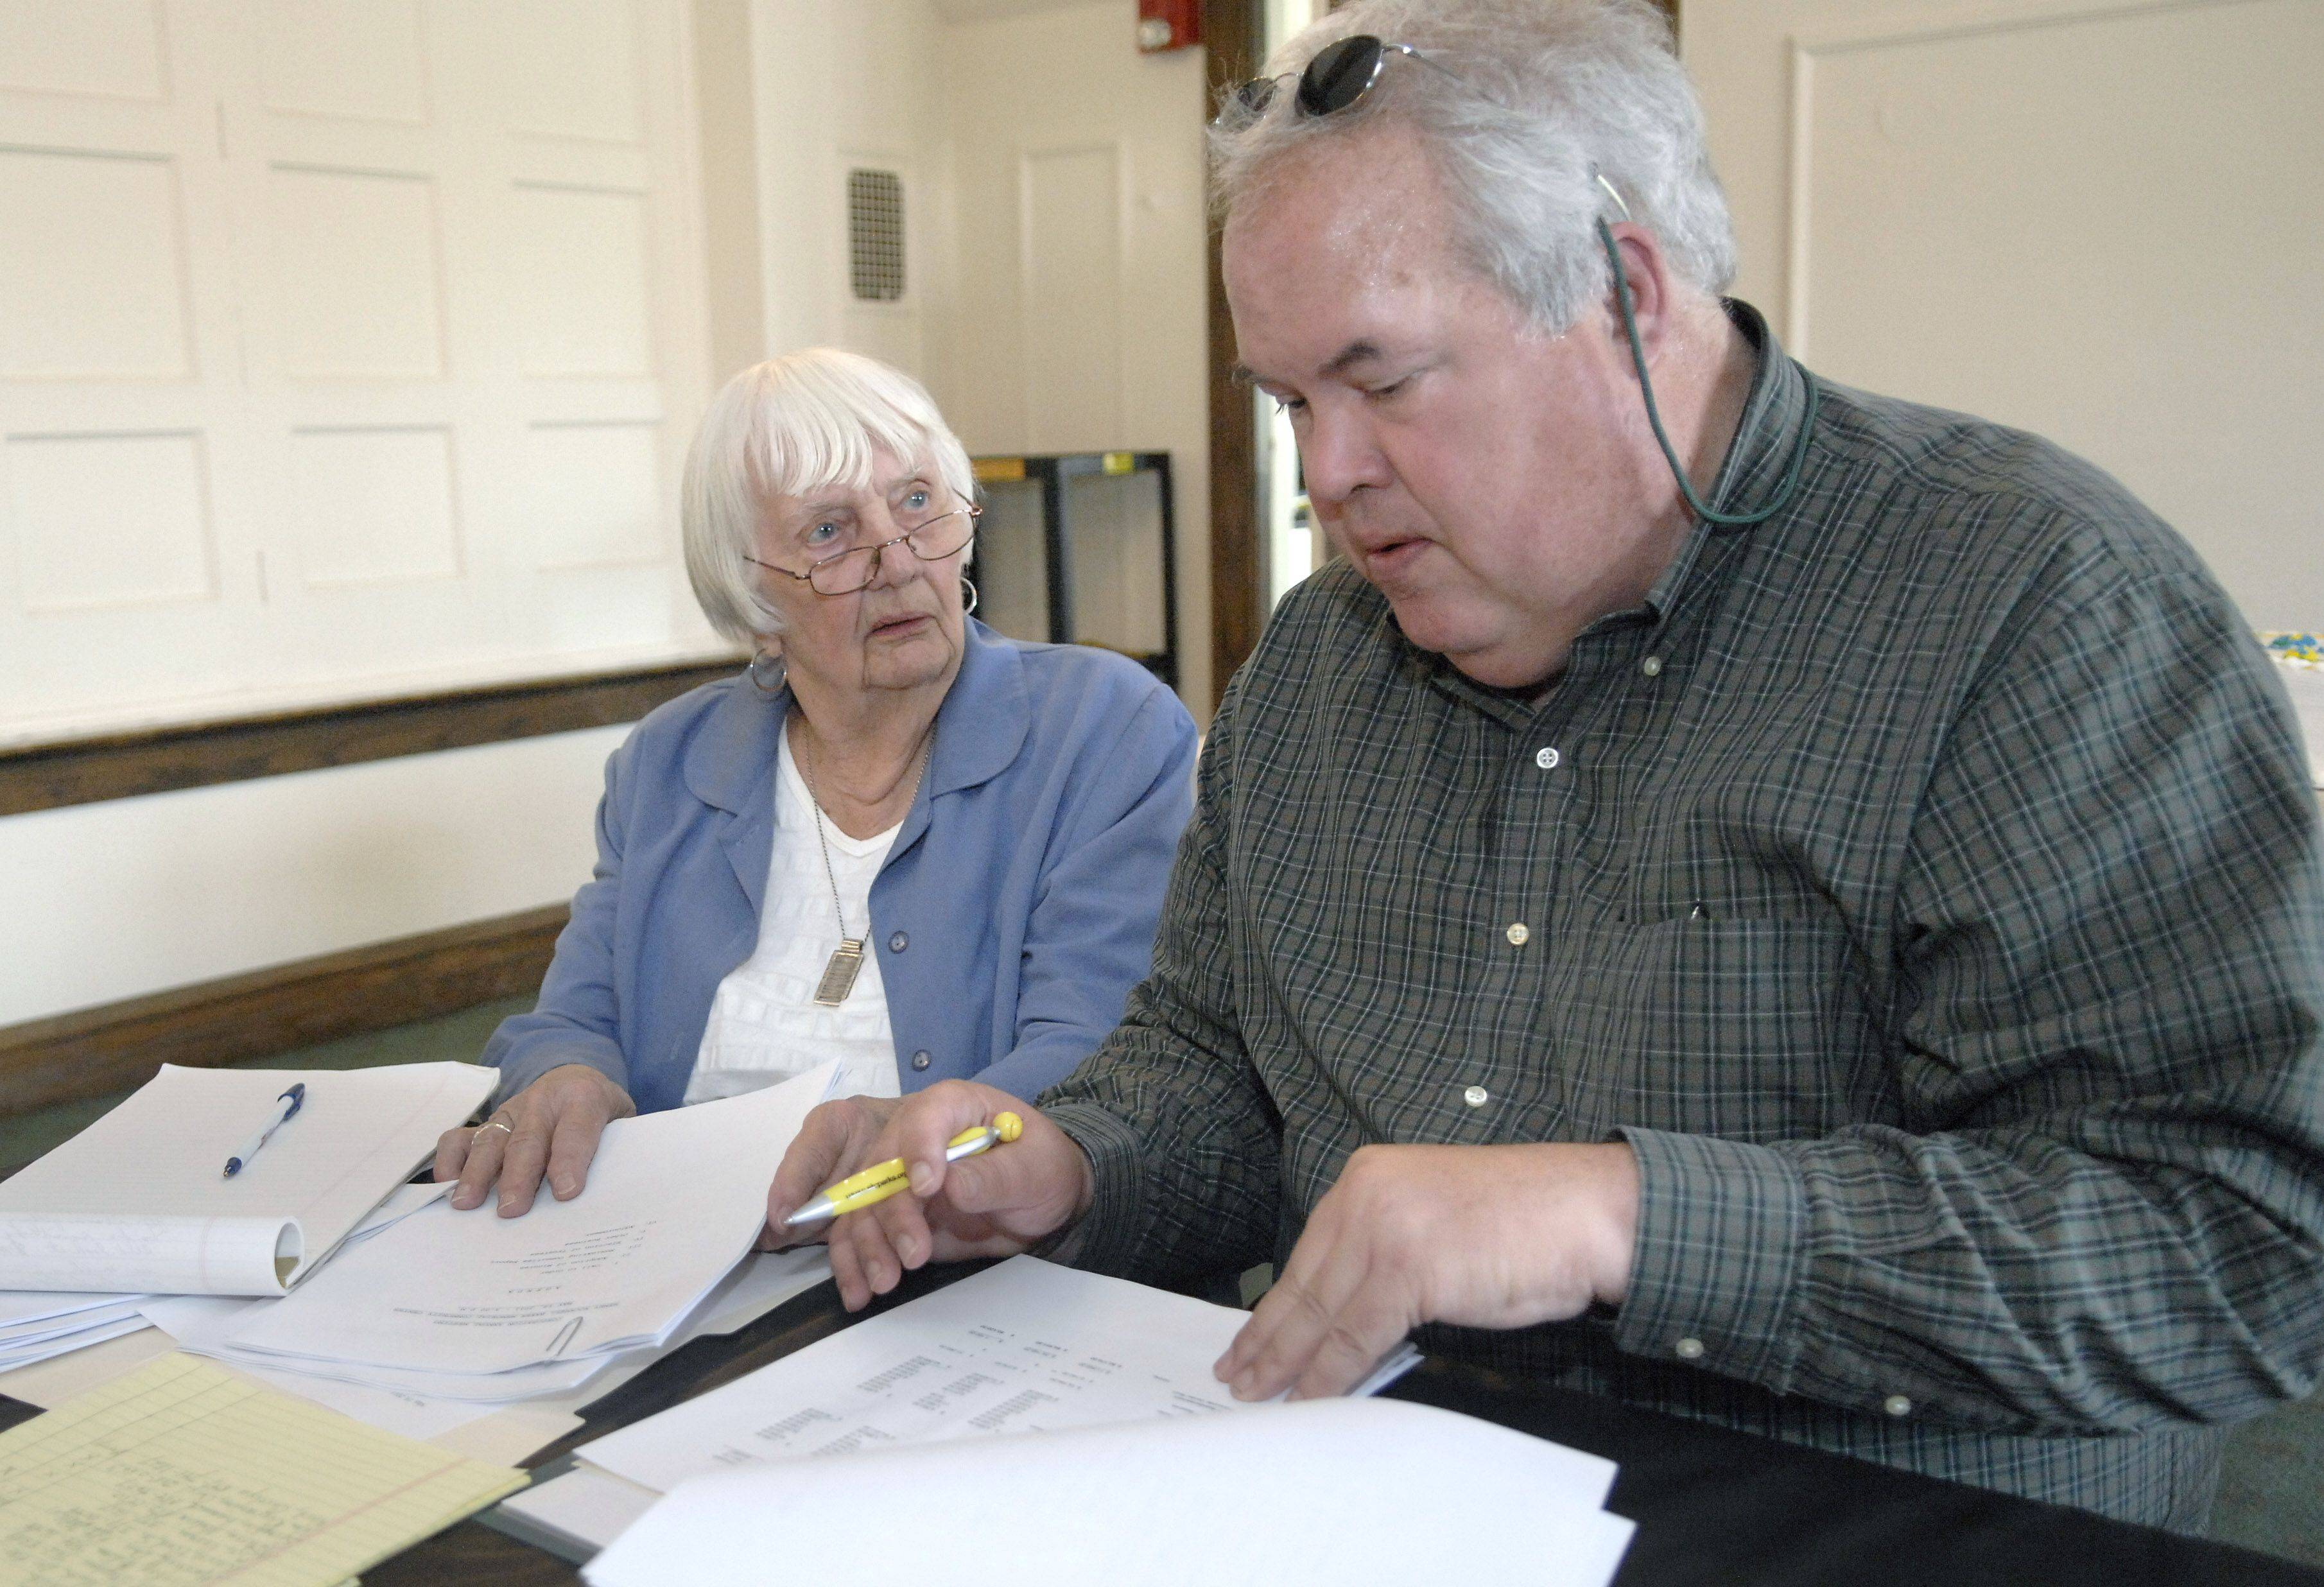 Baker Community Center administrative assistant Carol Glemza and board of directors President John Collins review notes before the annual board meeting May 19.